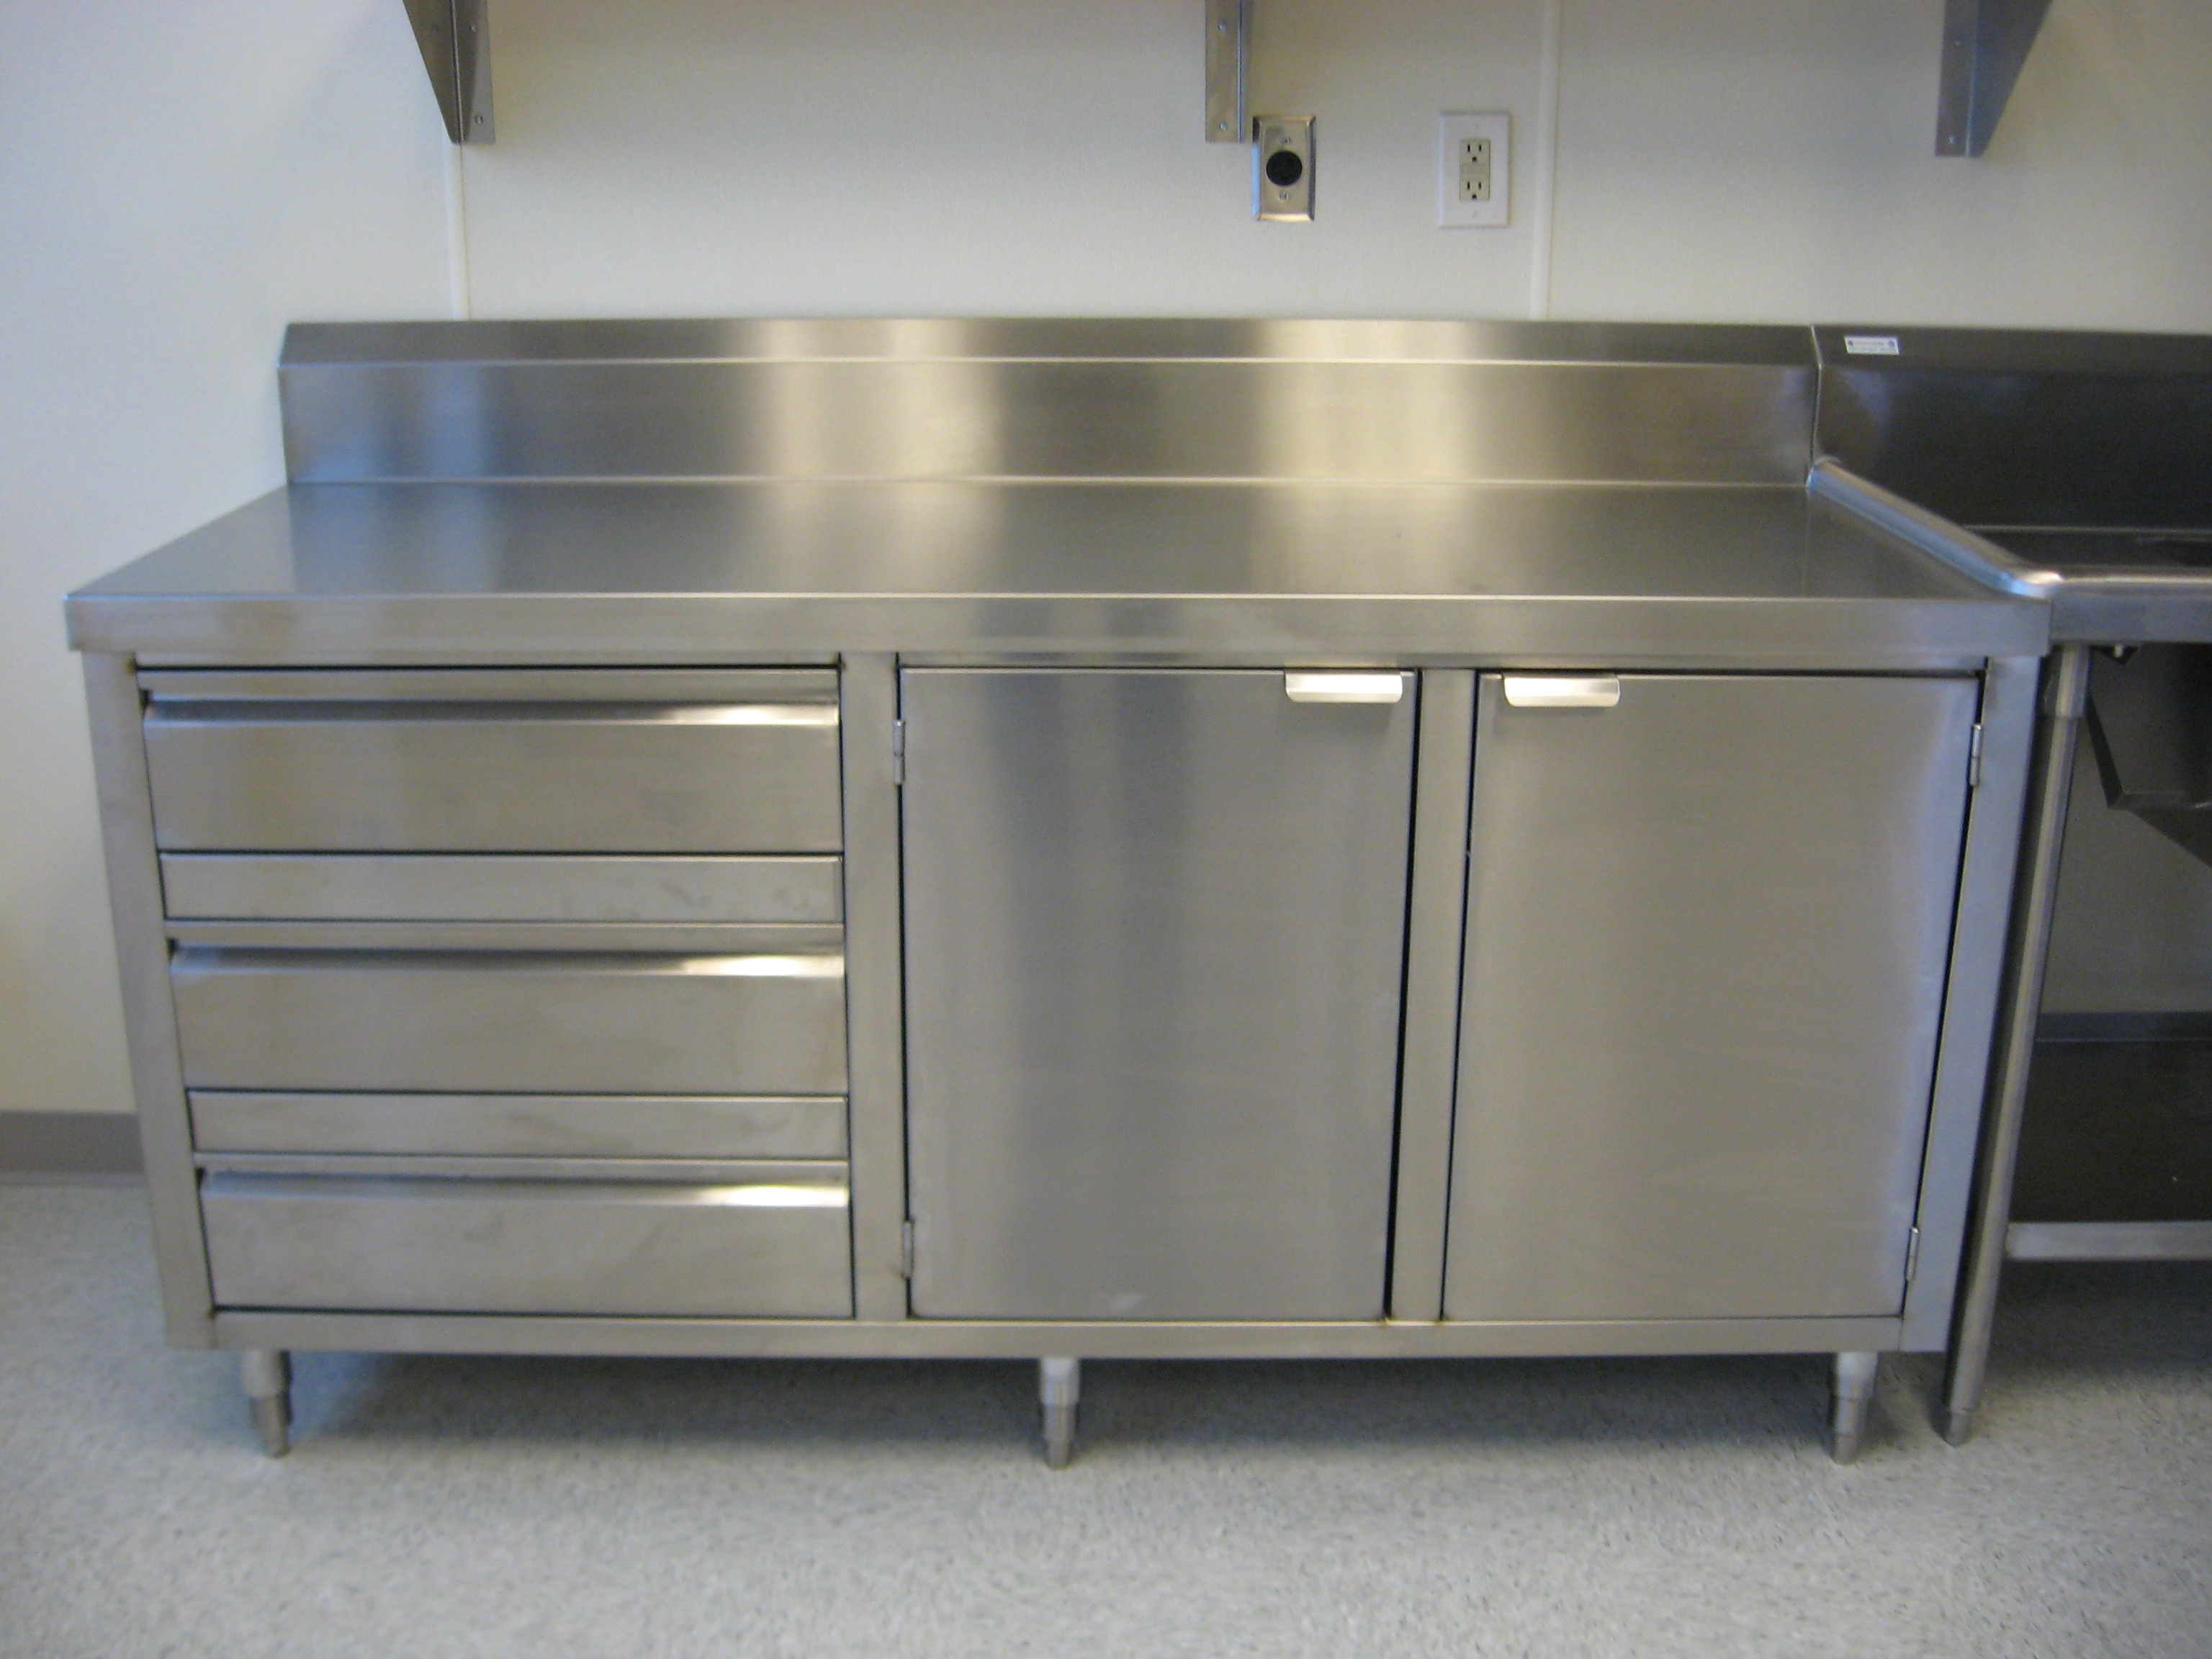 Stainless Steel Dish Storage Cabinet